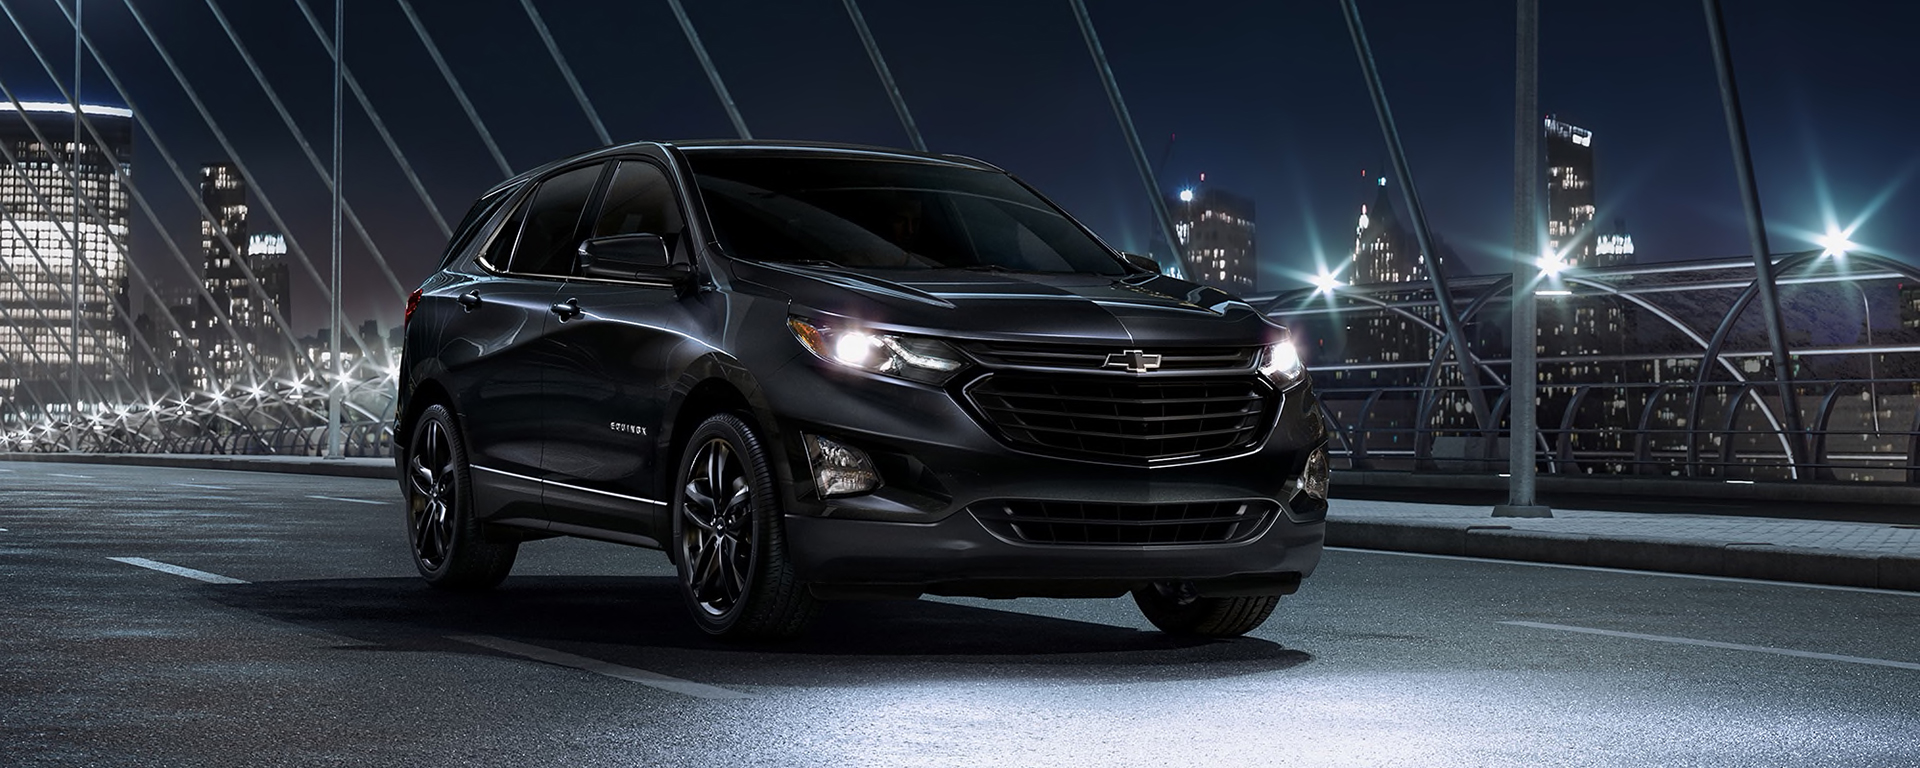 2020 Chevrolet Equinox - Performance